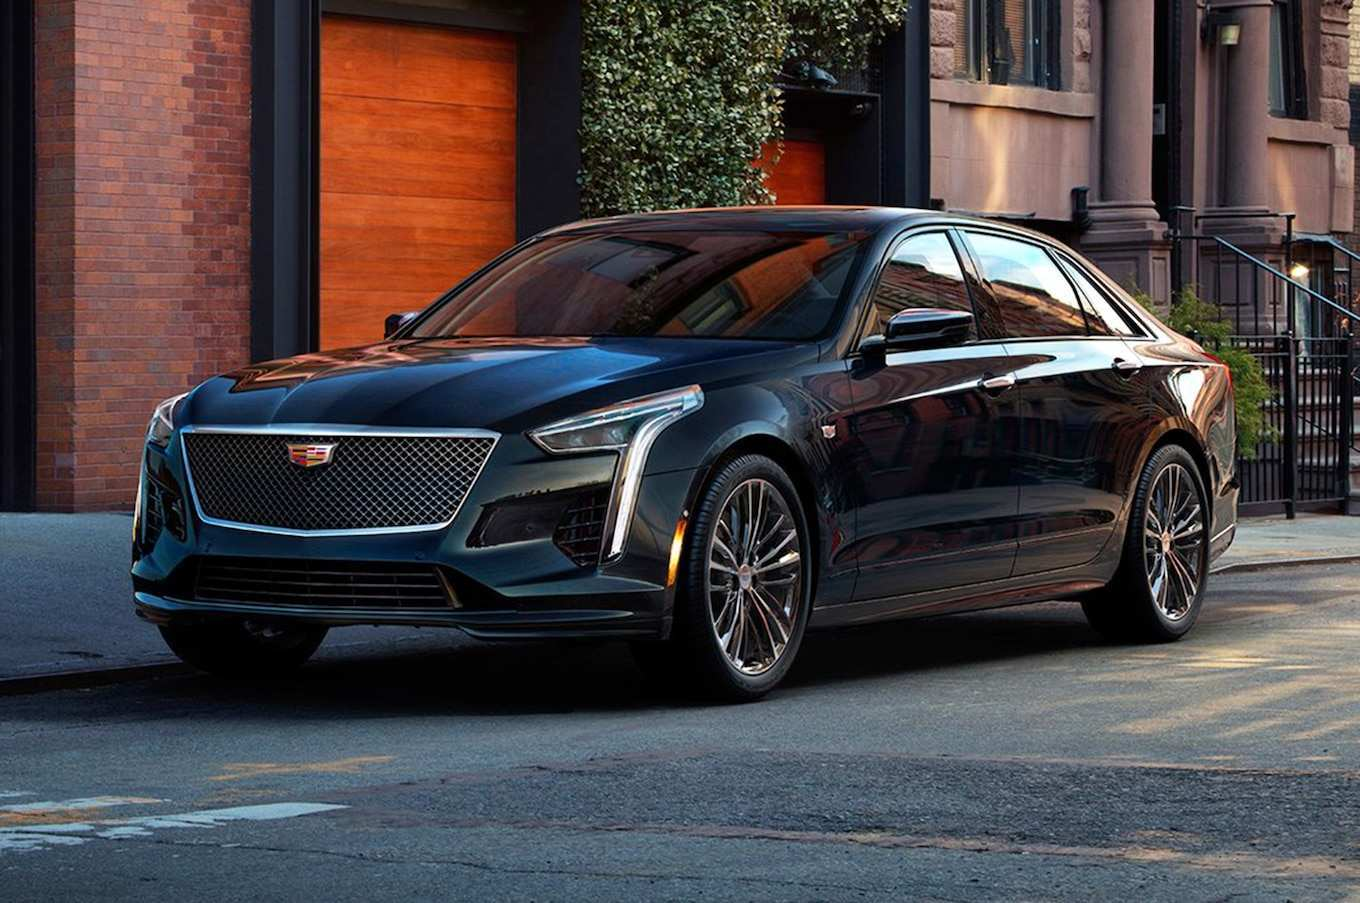 70 The 2019 Cadillac Ct4 Price